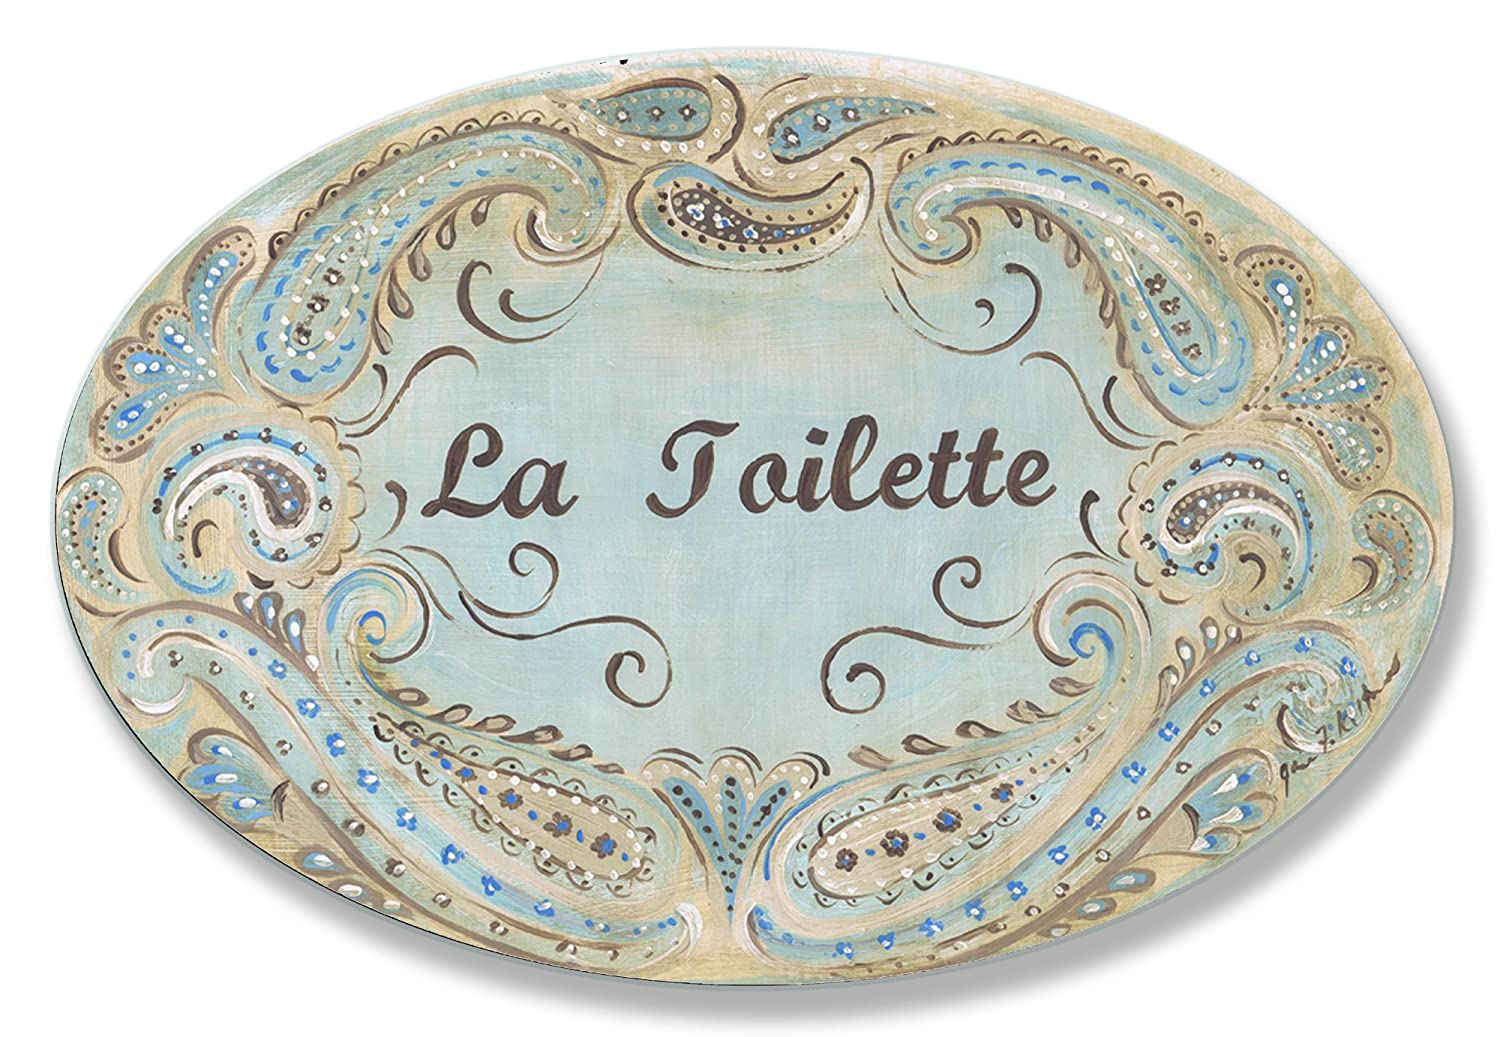 The Stupell Home Decor Collection La Toilette Blue and Brown Paisley Oval Bathroom Wall Plaque